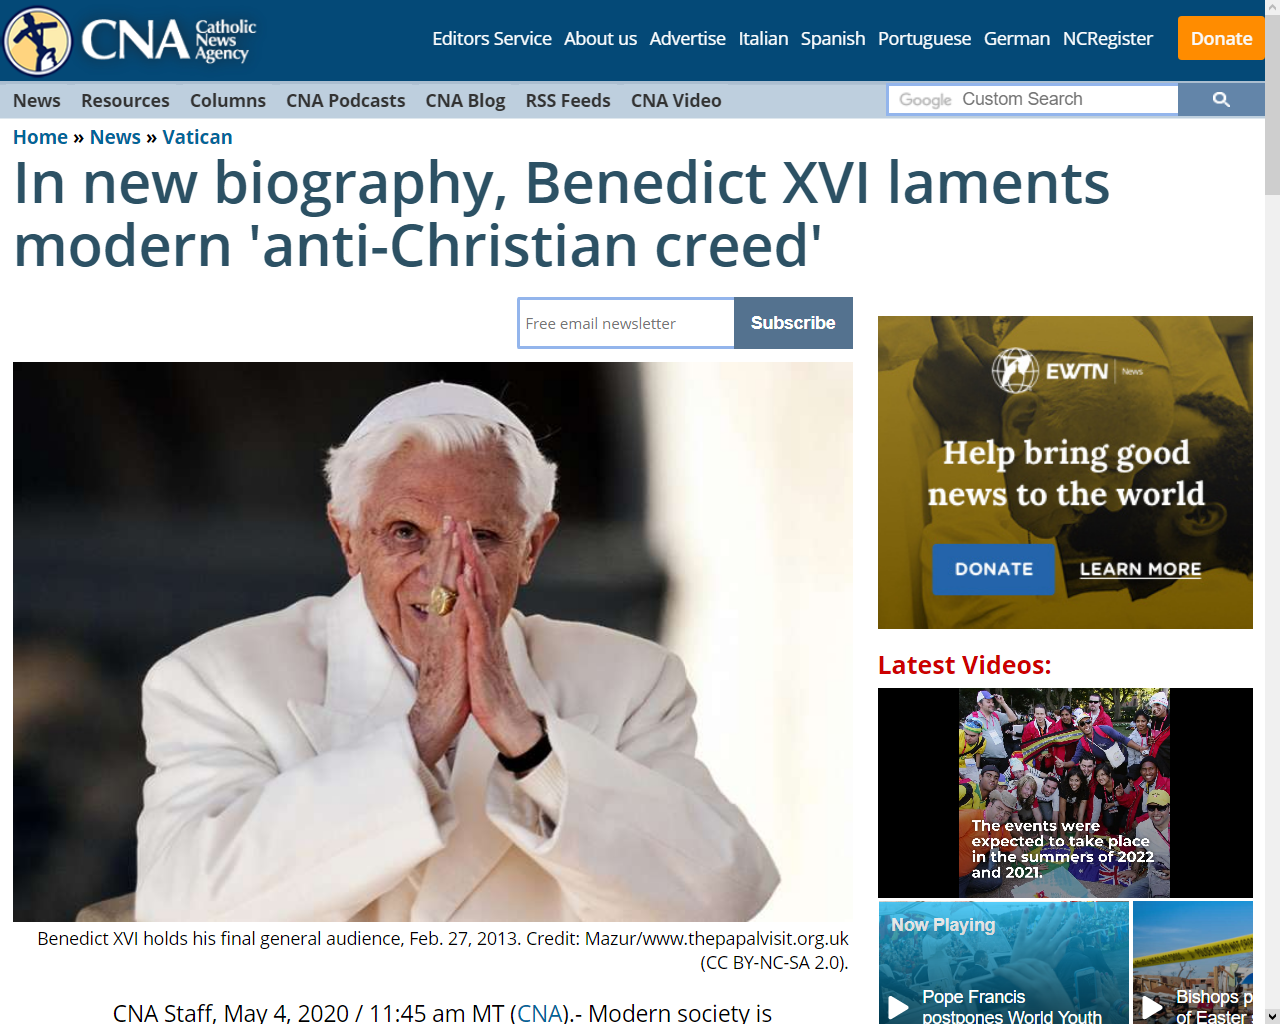 https://www.catholicnewsagency.com/news/in-new-biography-benedict-xvi-laments-modern-anti-christian-creed-83240